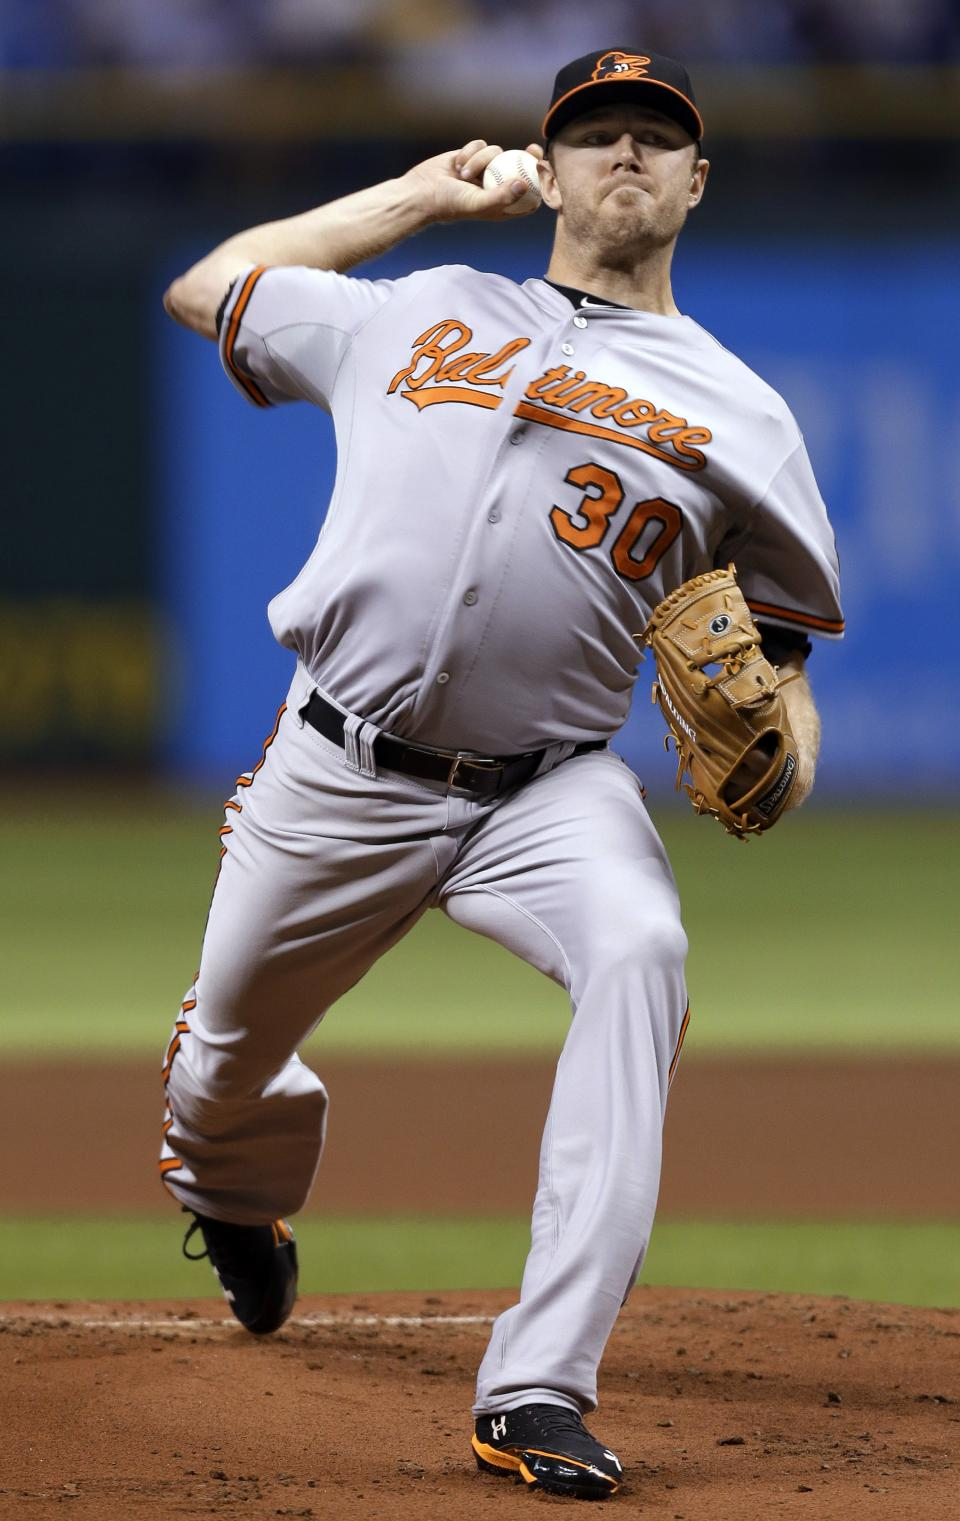 Baltimore Orioles starting pitcher Chris Tillman delivers to the Tampa Bay Rays during the first inning of a baseball game Wednesday, Oct. 3, 2012, in St. Petersburg, Fla. (AP Photo/Chris O'Meara)